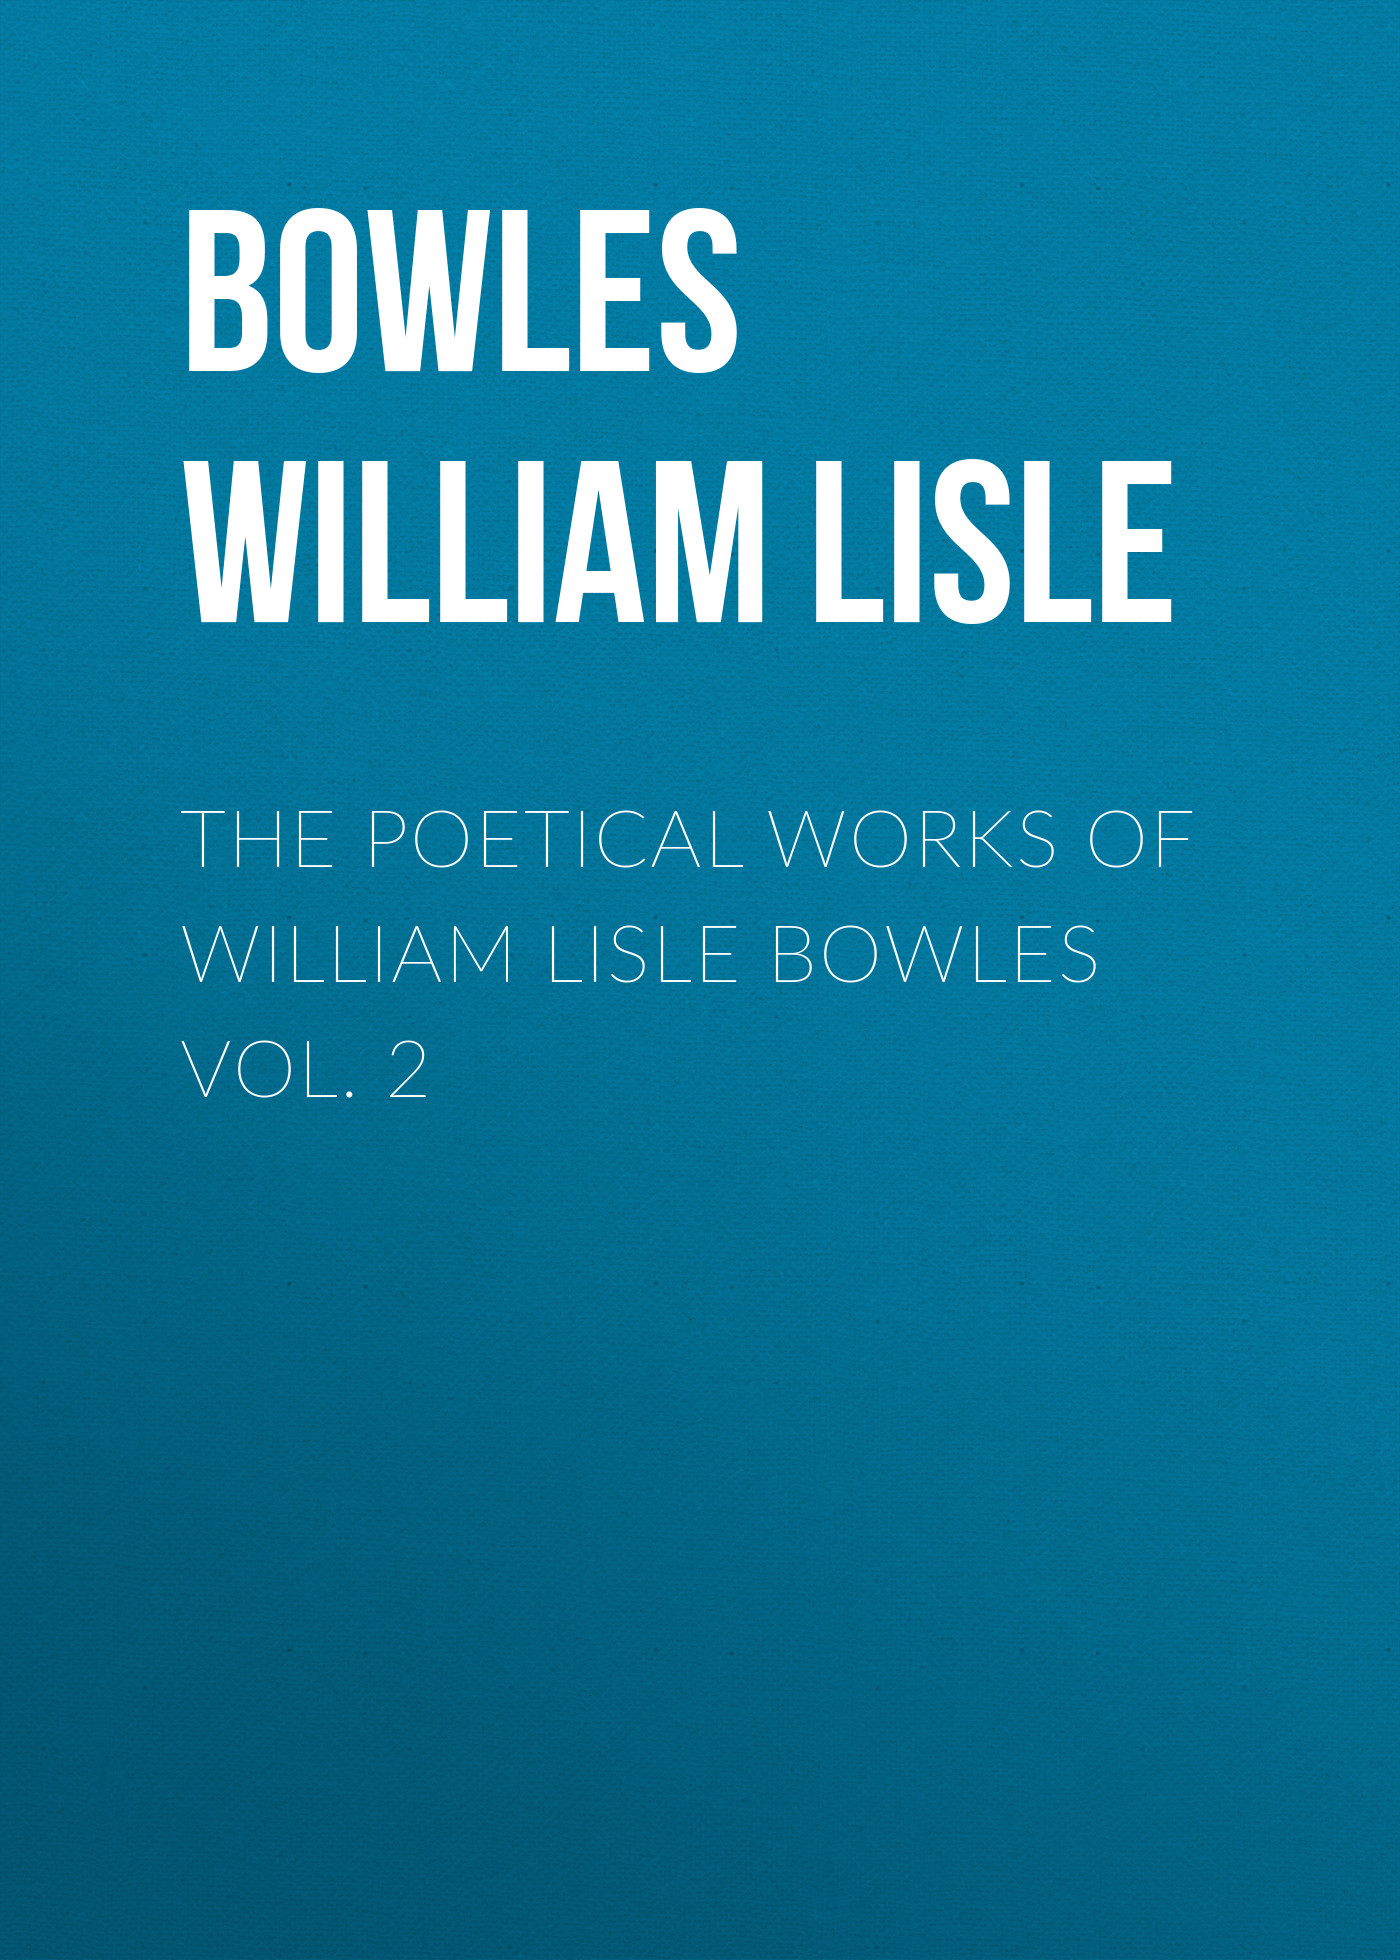 Bowles William Lisle The Poetical Works of William Lisle Bowles Vol. 2 william shenstone the poetical works vol 2